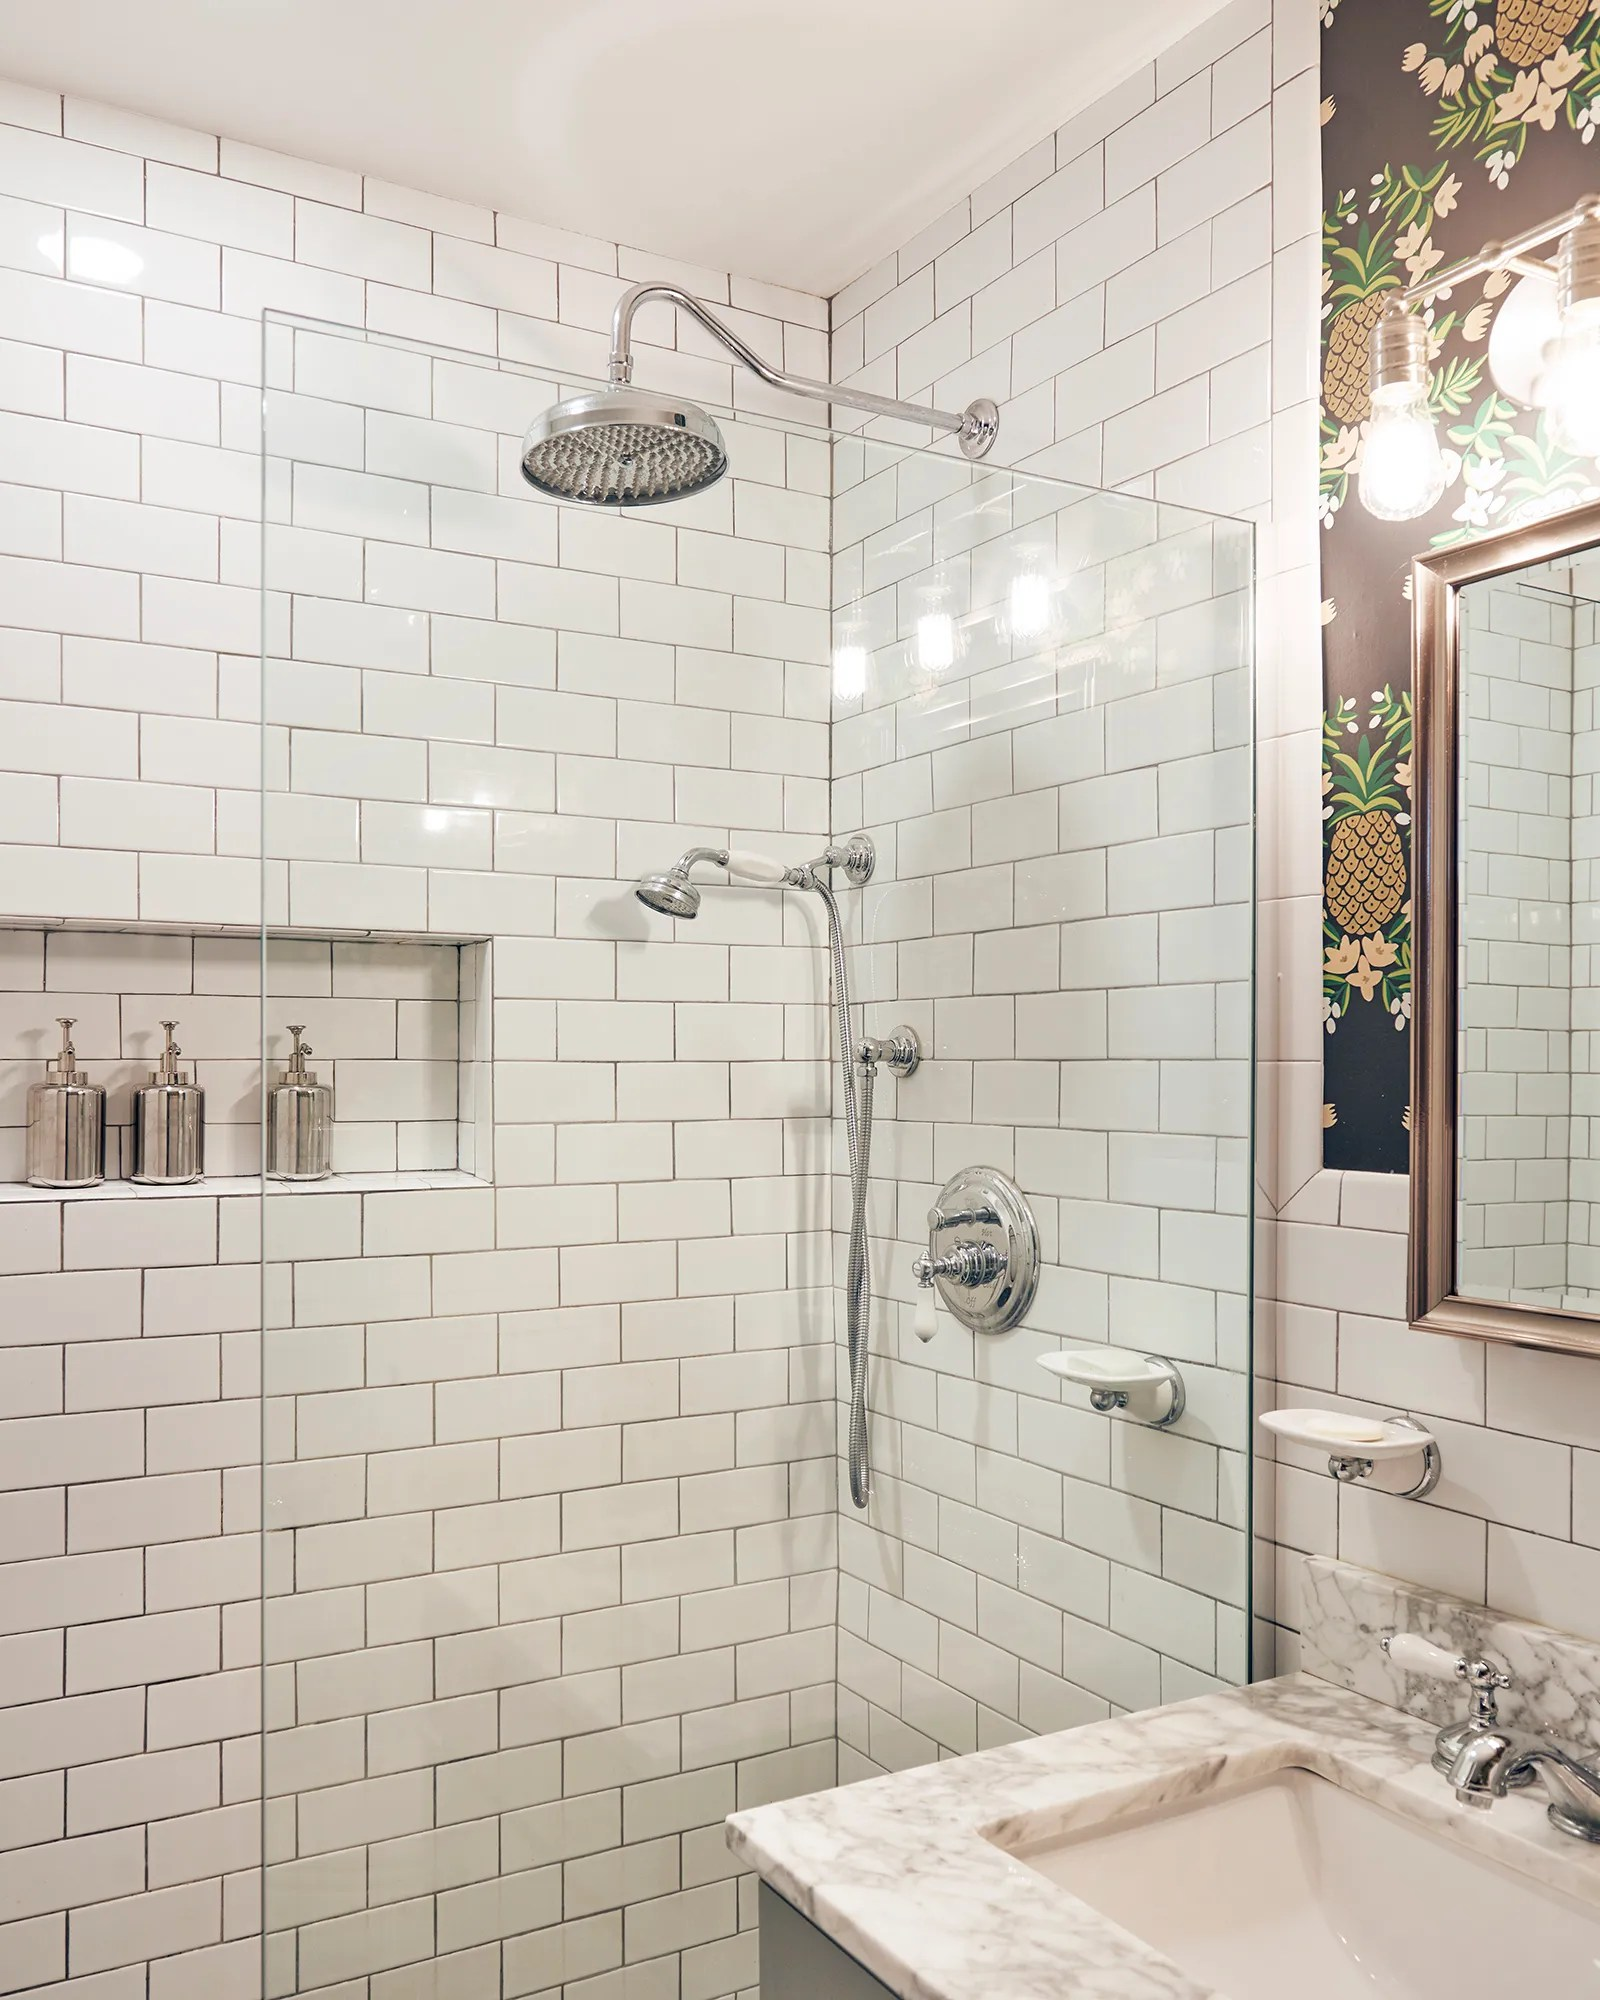 A Tiny Bathroom Renovation Packed With Serious Personality Architectural Digest